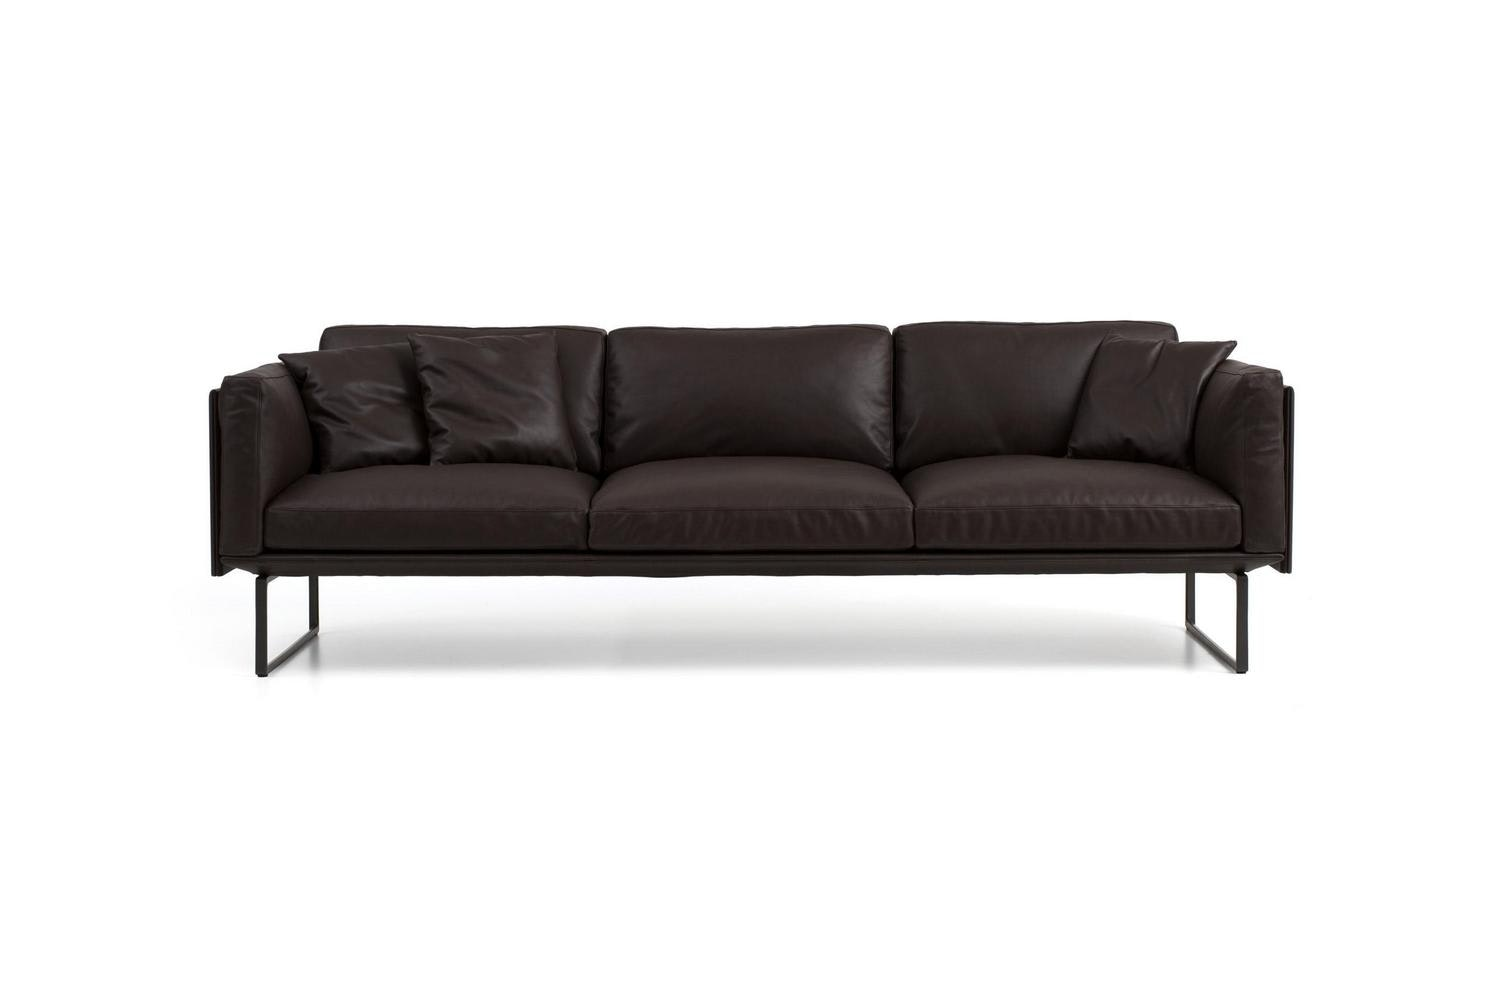 202 8 Sofa by Piero Lissoni for Cassina